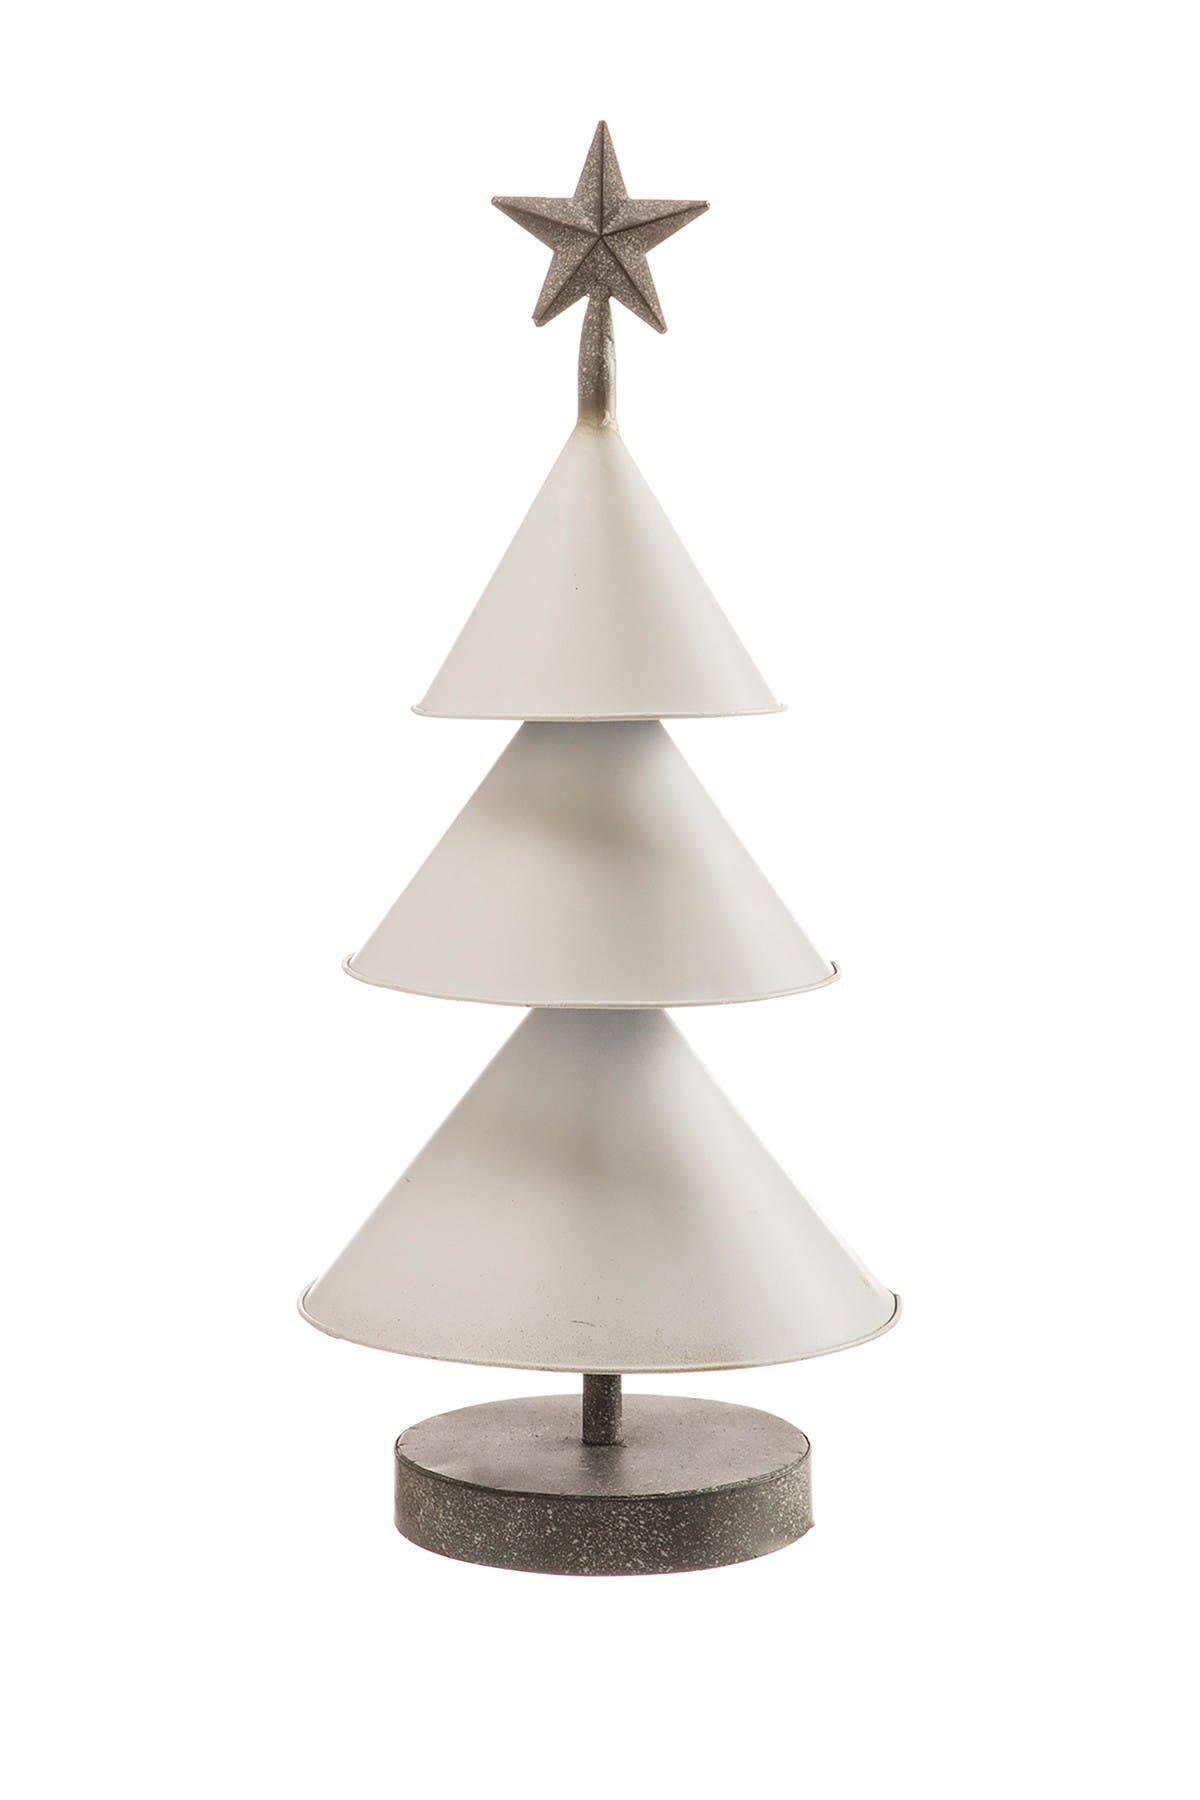 "Image of ALLSTATE 22.5"" Metal Tree with Star Table Top"